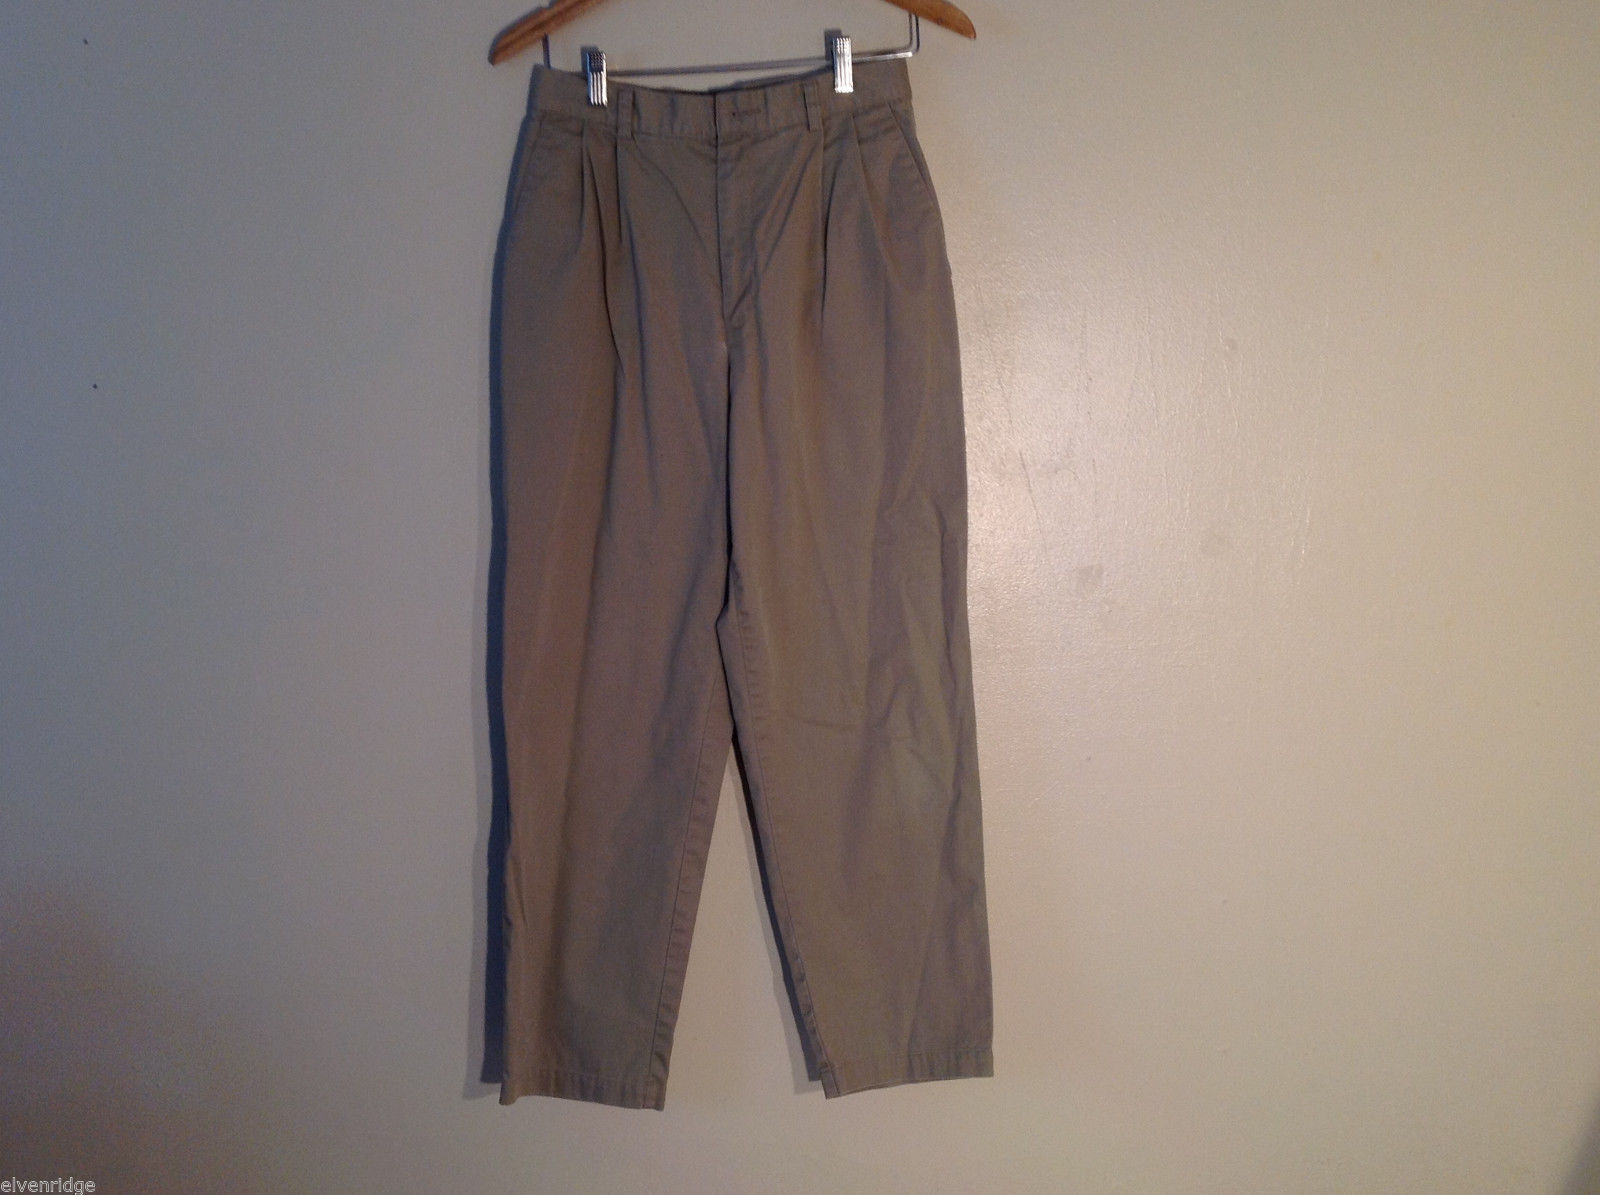 Dockers Women's Size 8 Short Petite Khakis Chinos Tan Pants Straight Leg Pleated